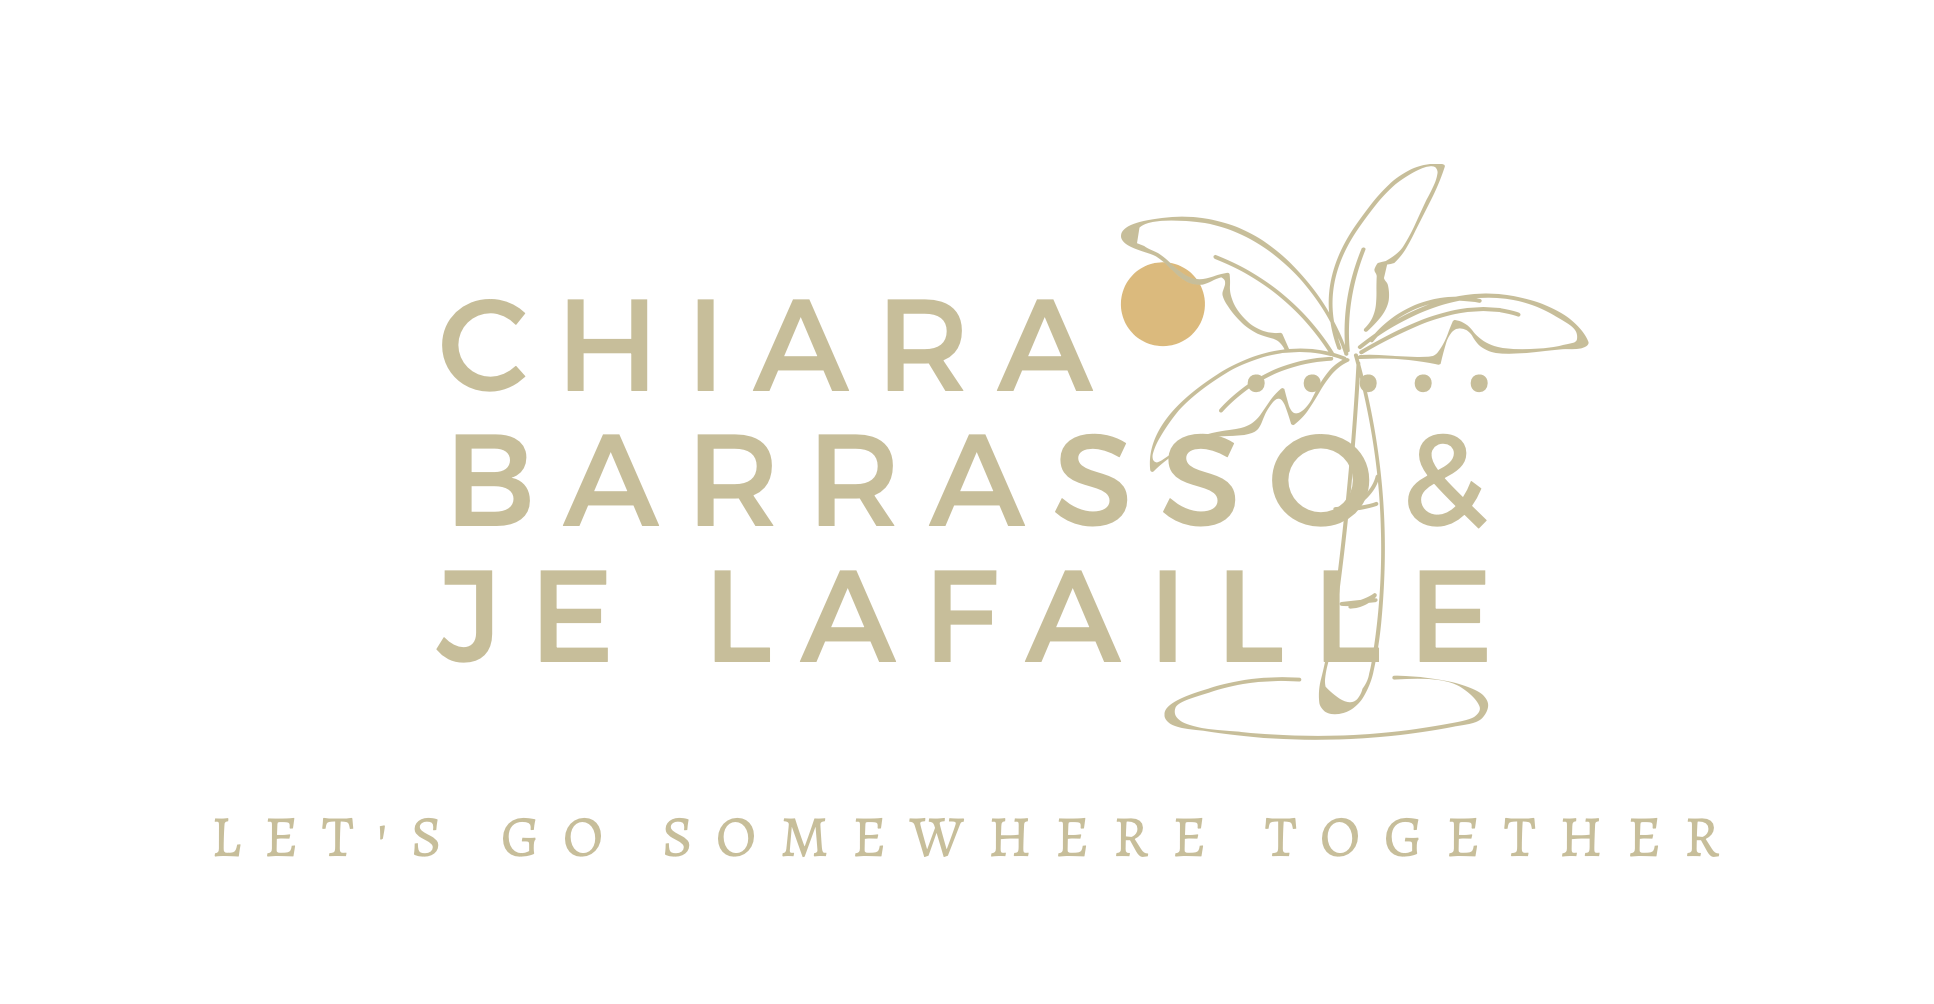 Chiara Barrasso & JE Lafaille – Travel couple around the world